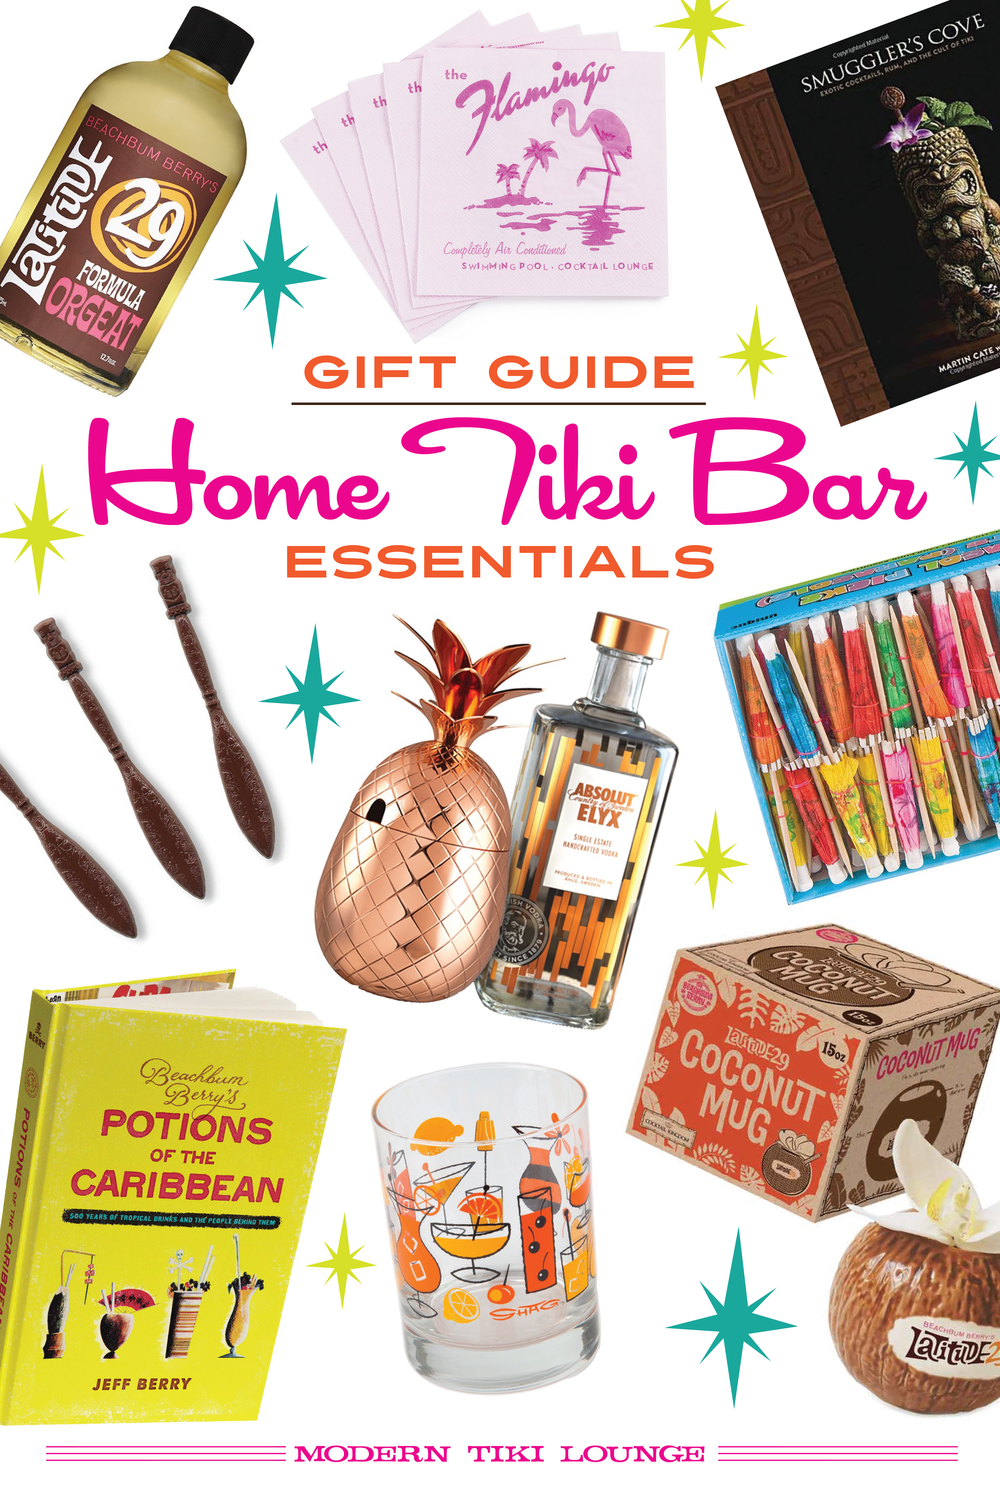 gift-guide-home-tiki-bar-essentials.jpg